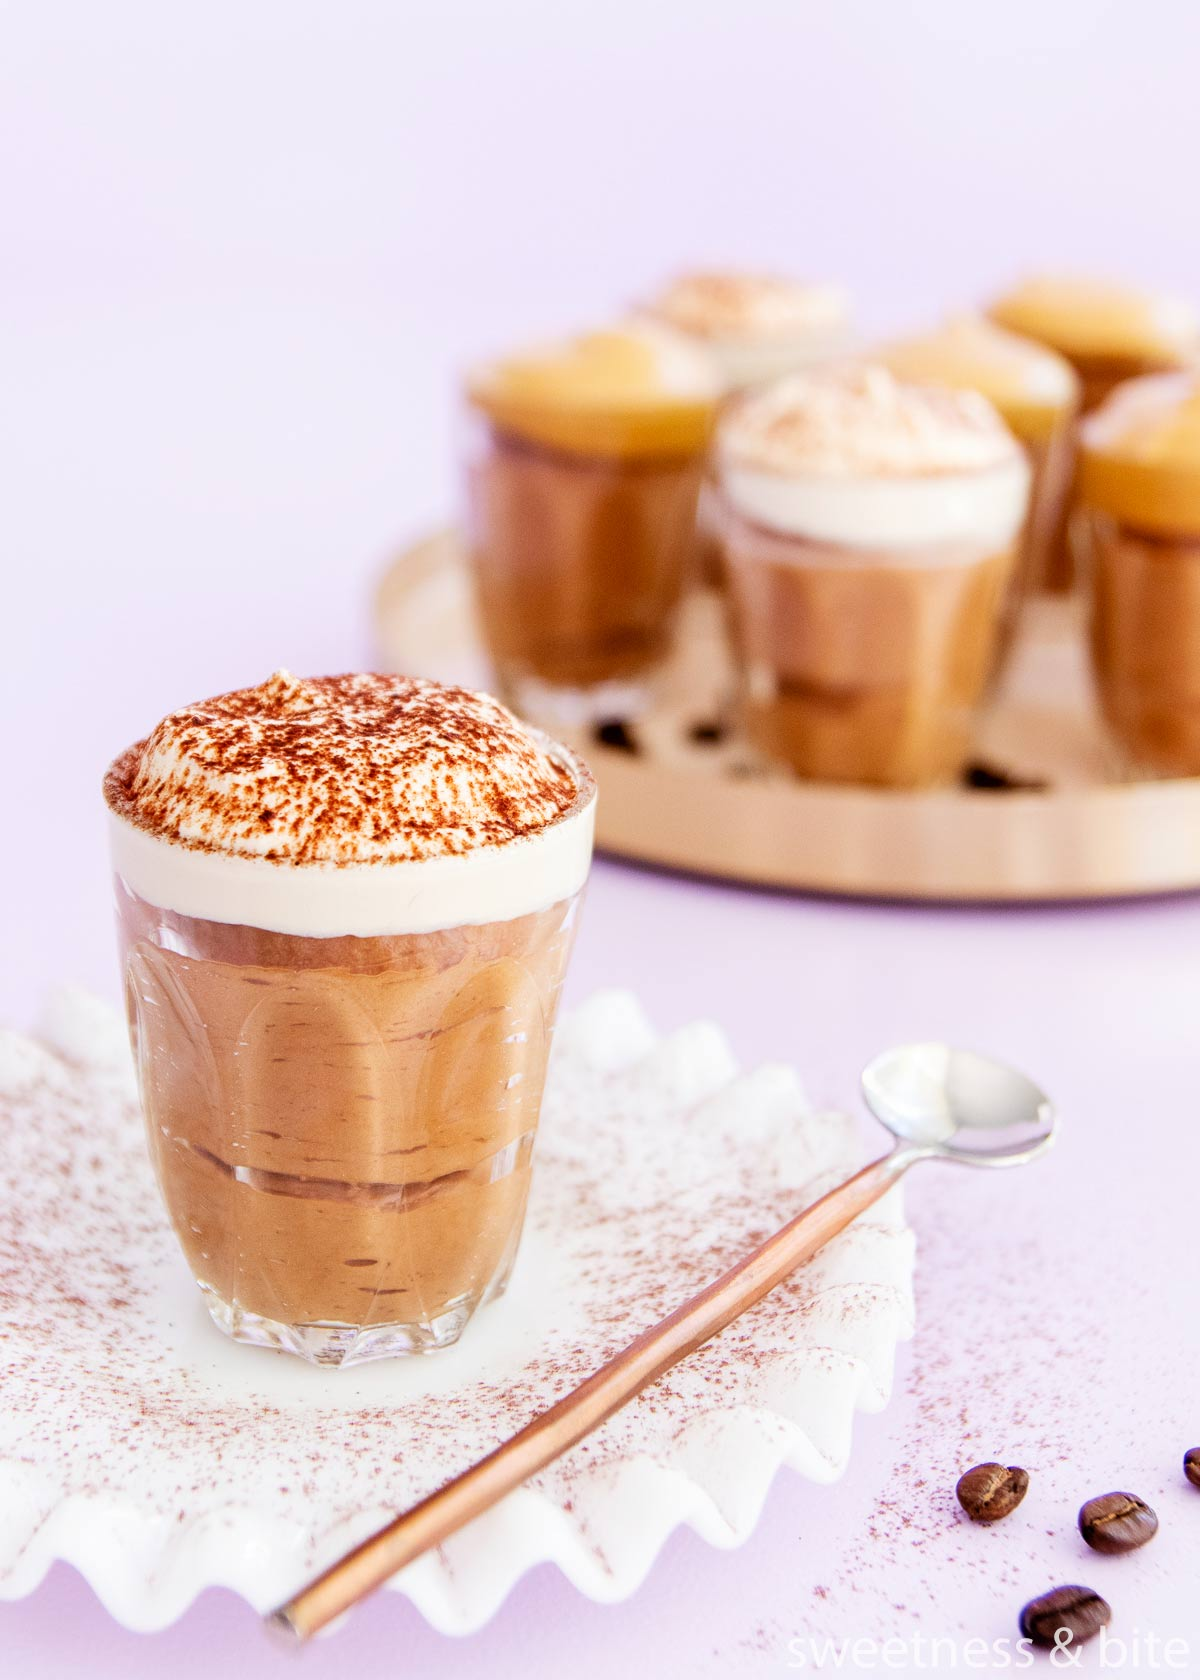 Easy mocha mousse with whipped cream topping